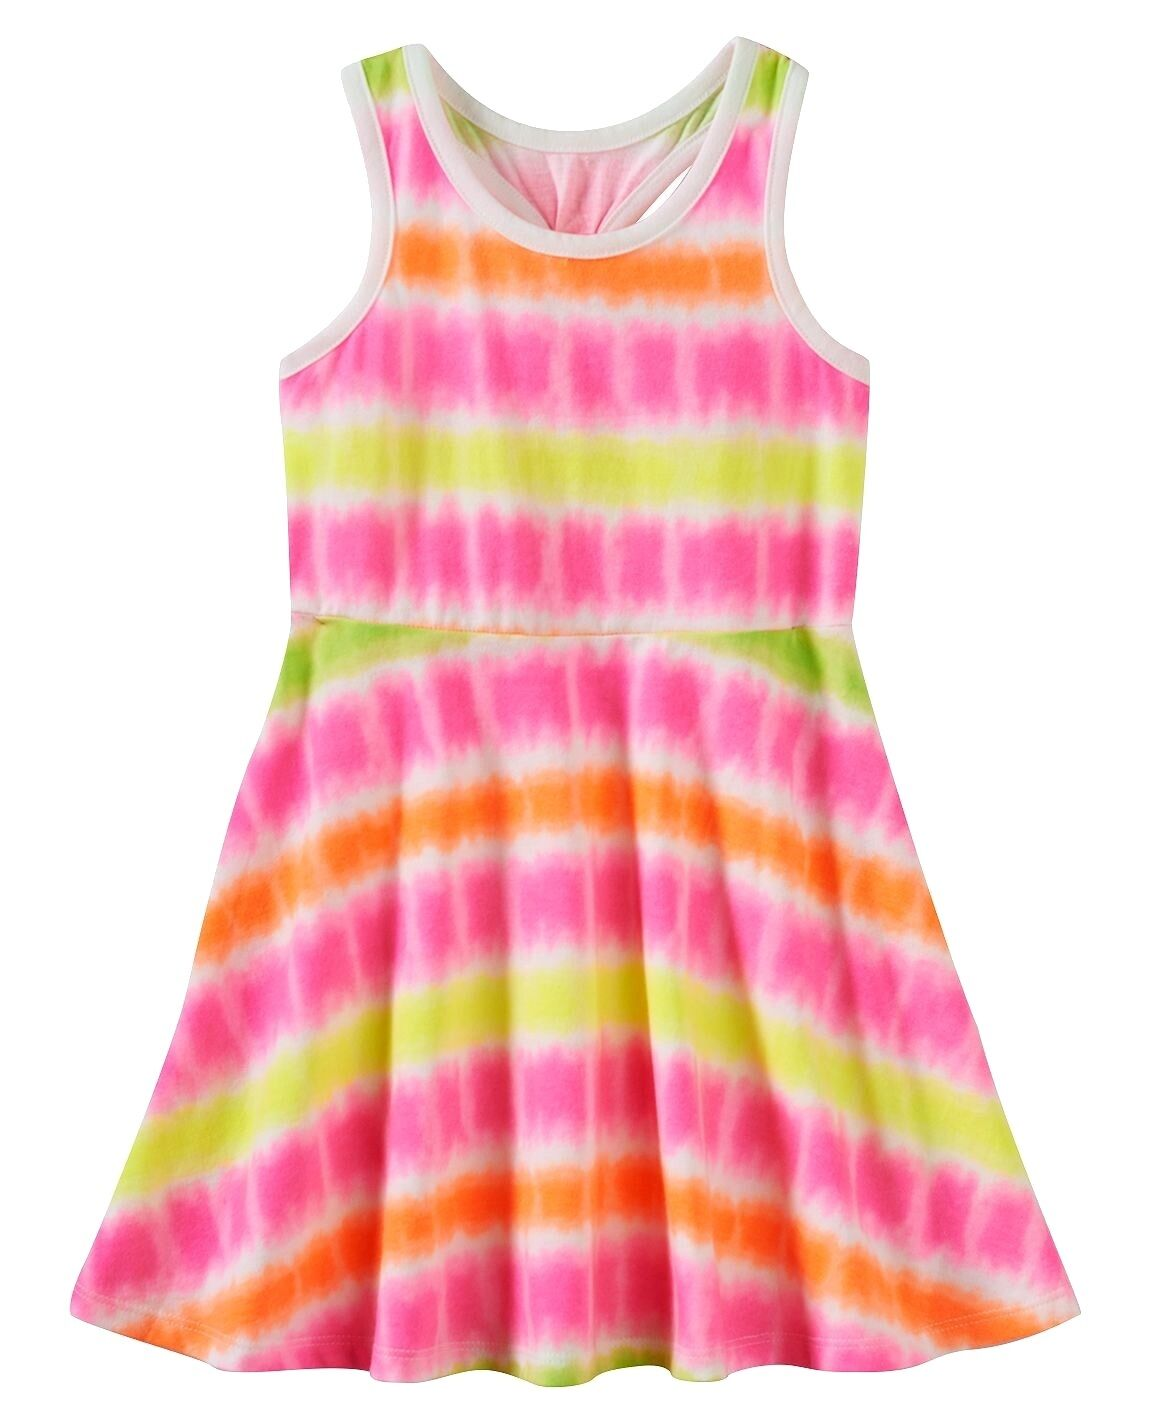 NWT Jumping Beans Pink Tie Dye Dress Baby Girl Sizes 12M 18M Girls 4 2T 3T